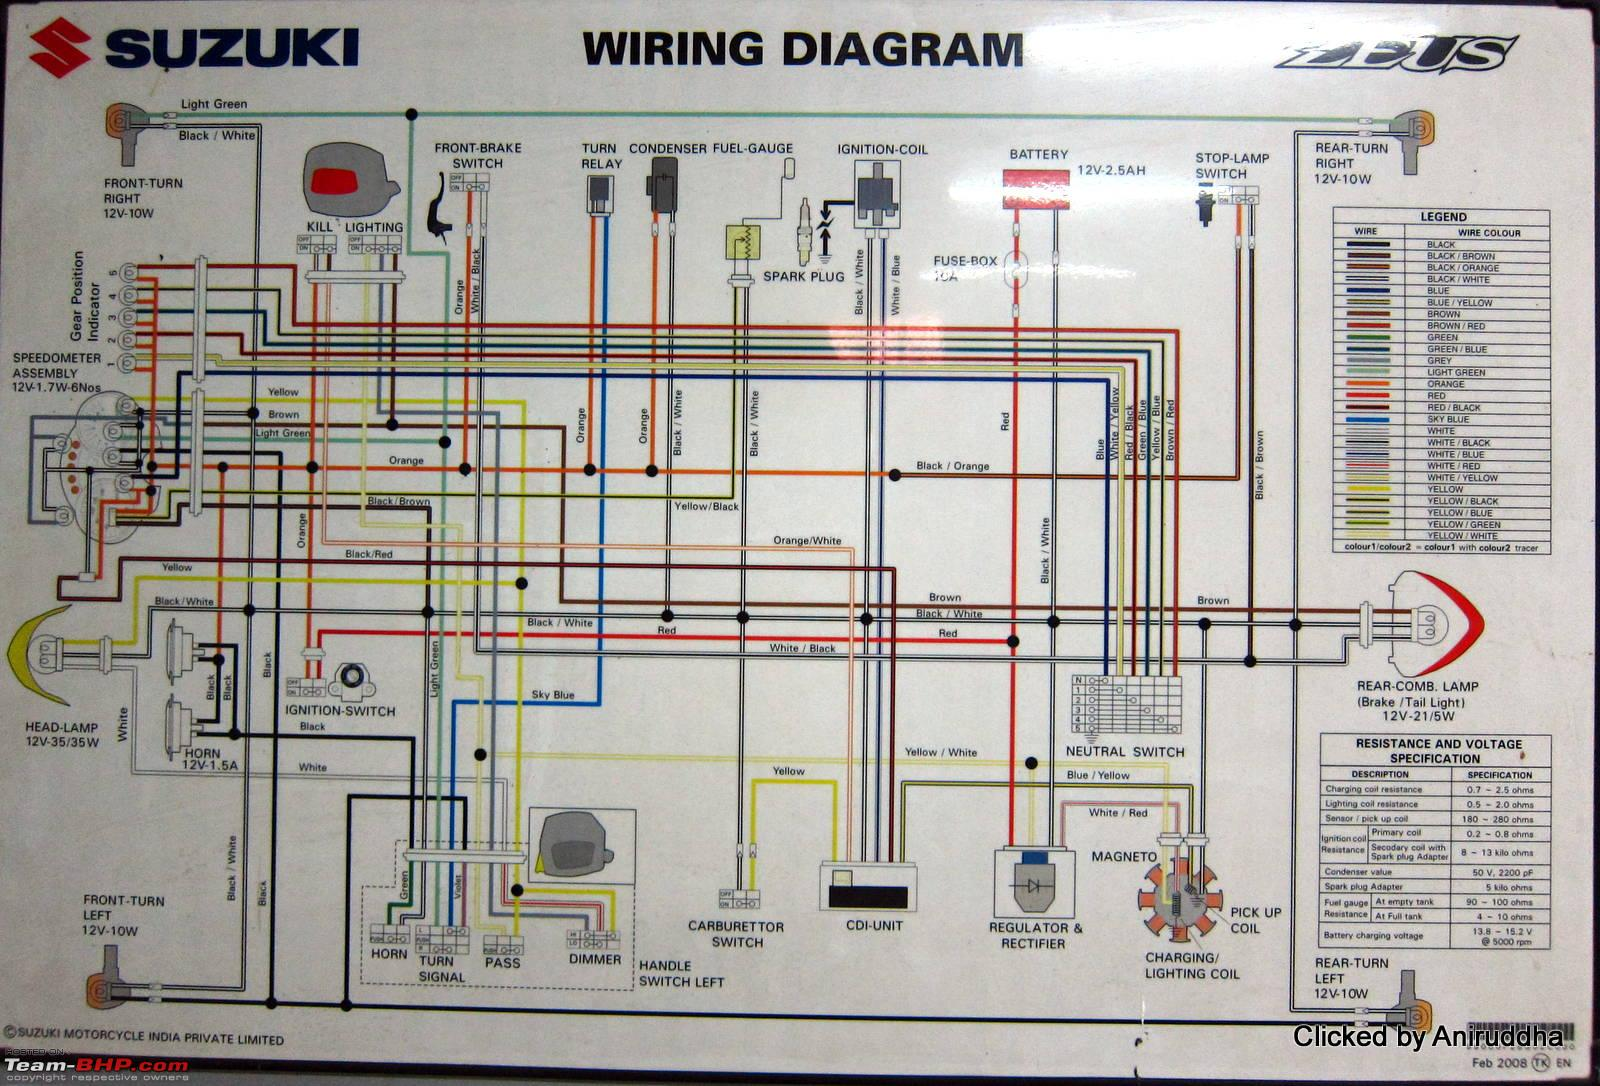 Suzuki Access 125 Wiring Diagram Electricity Drz 400 Diagrams Of Indian Two Wheelers Team Bhp Rh Com 2012 Chevy Truck